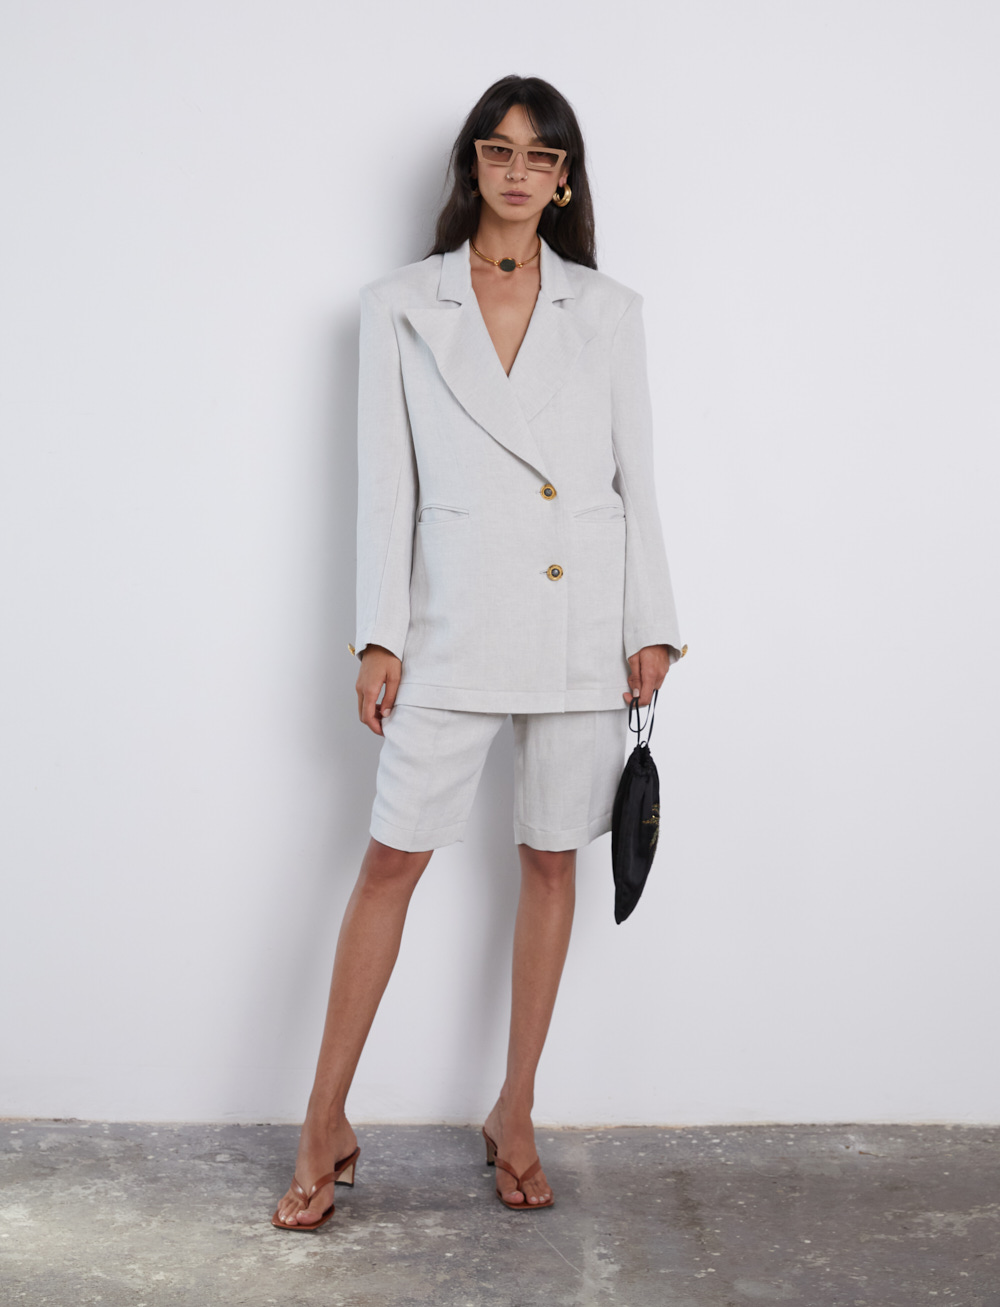 Jacqueline 2.1 Blazer by Manurí on curated-crowd.com